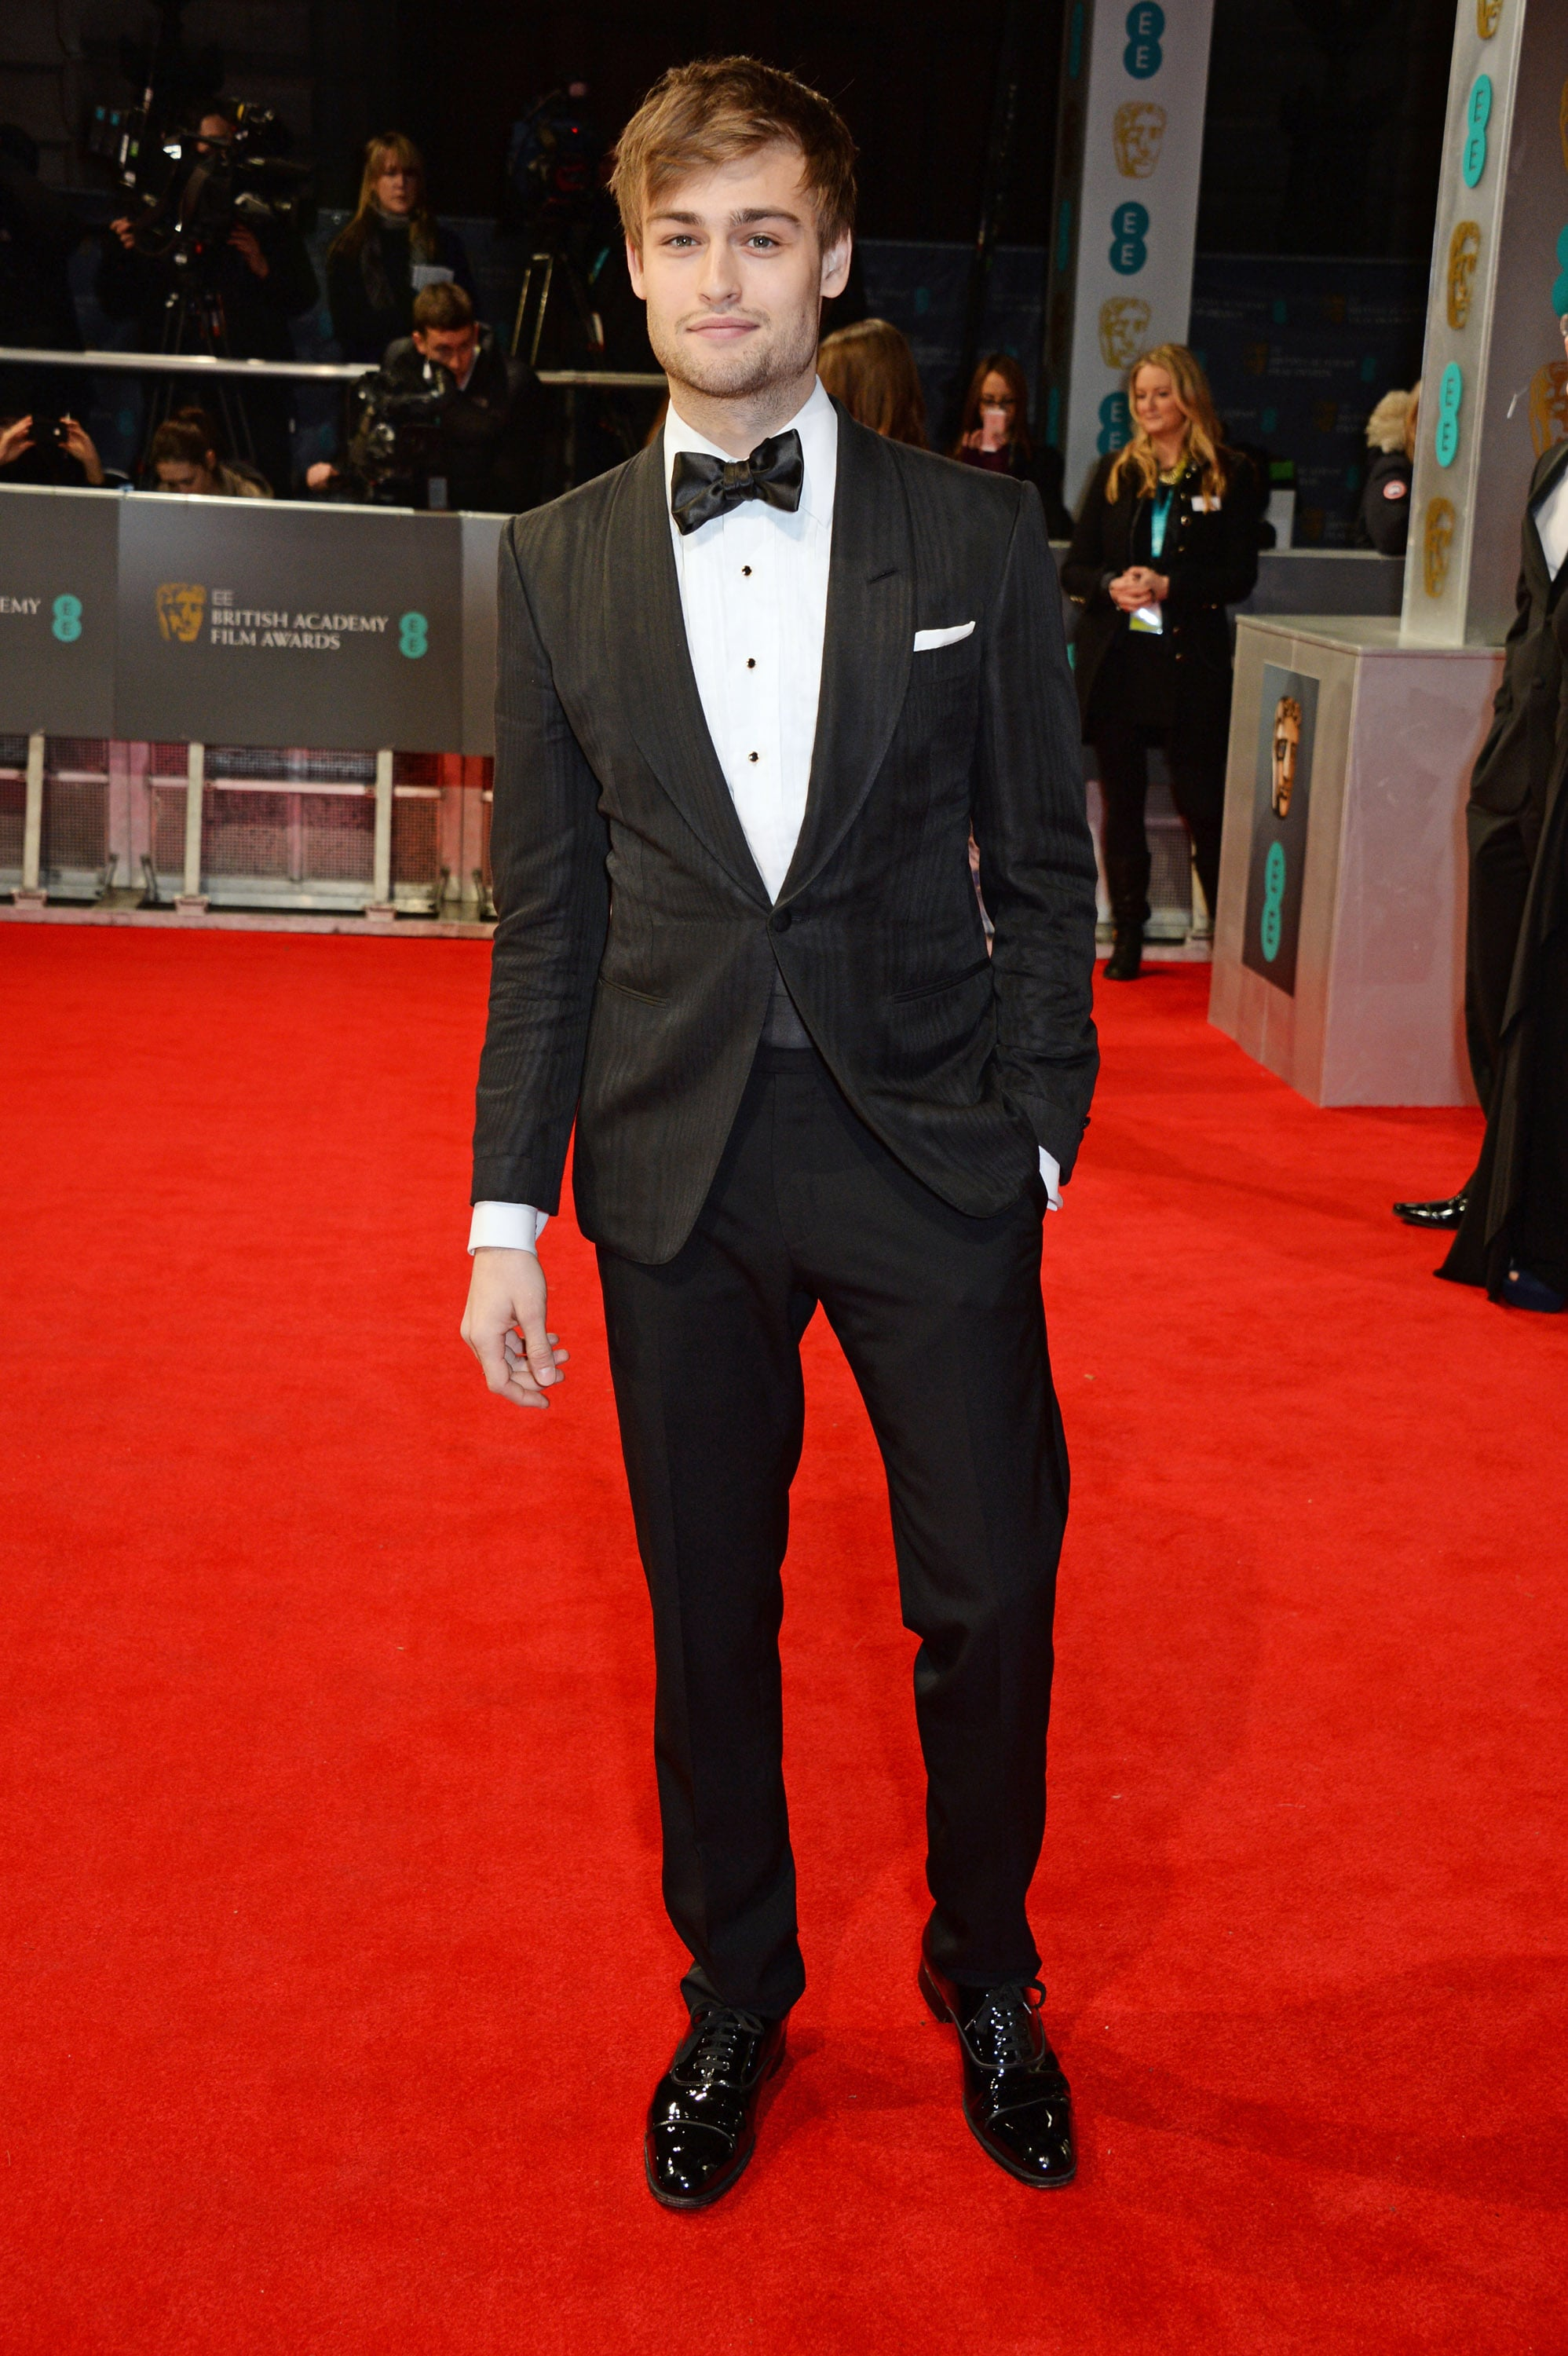 Douglas Booth at the 2014 BAFTA Awards.